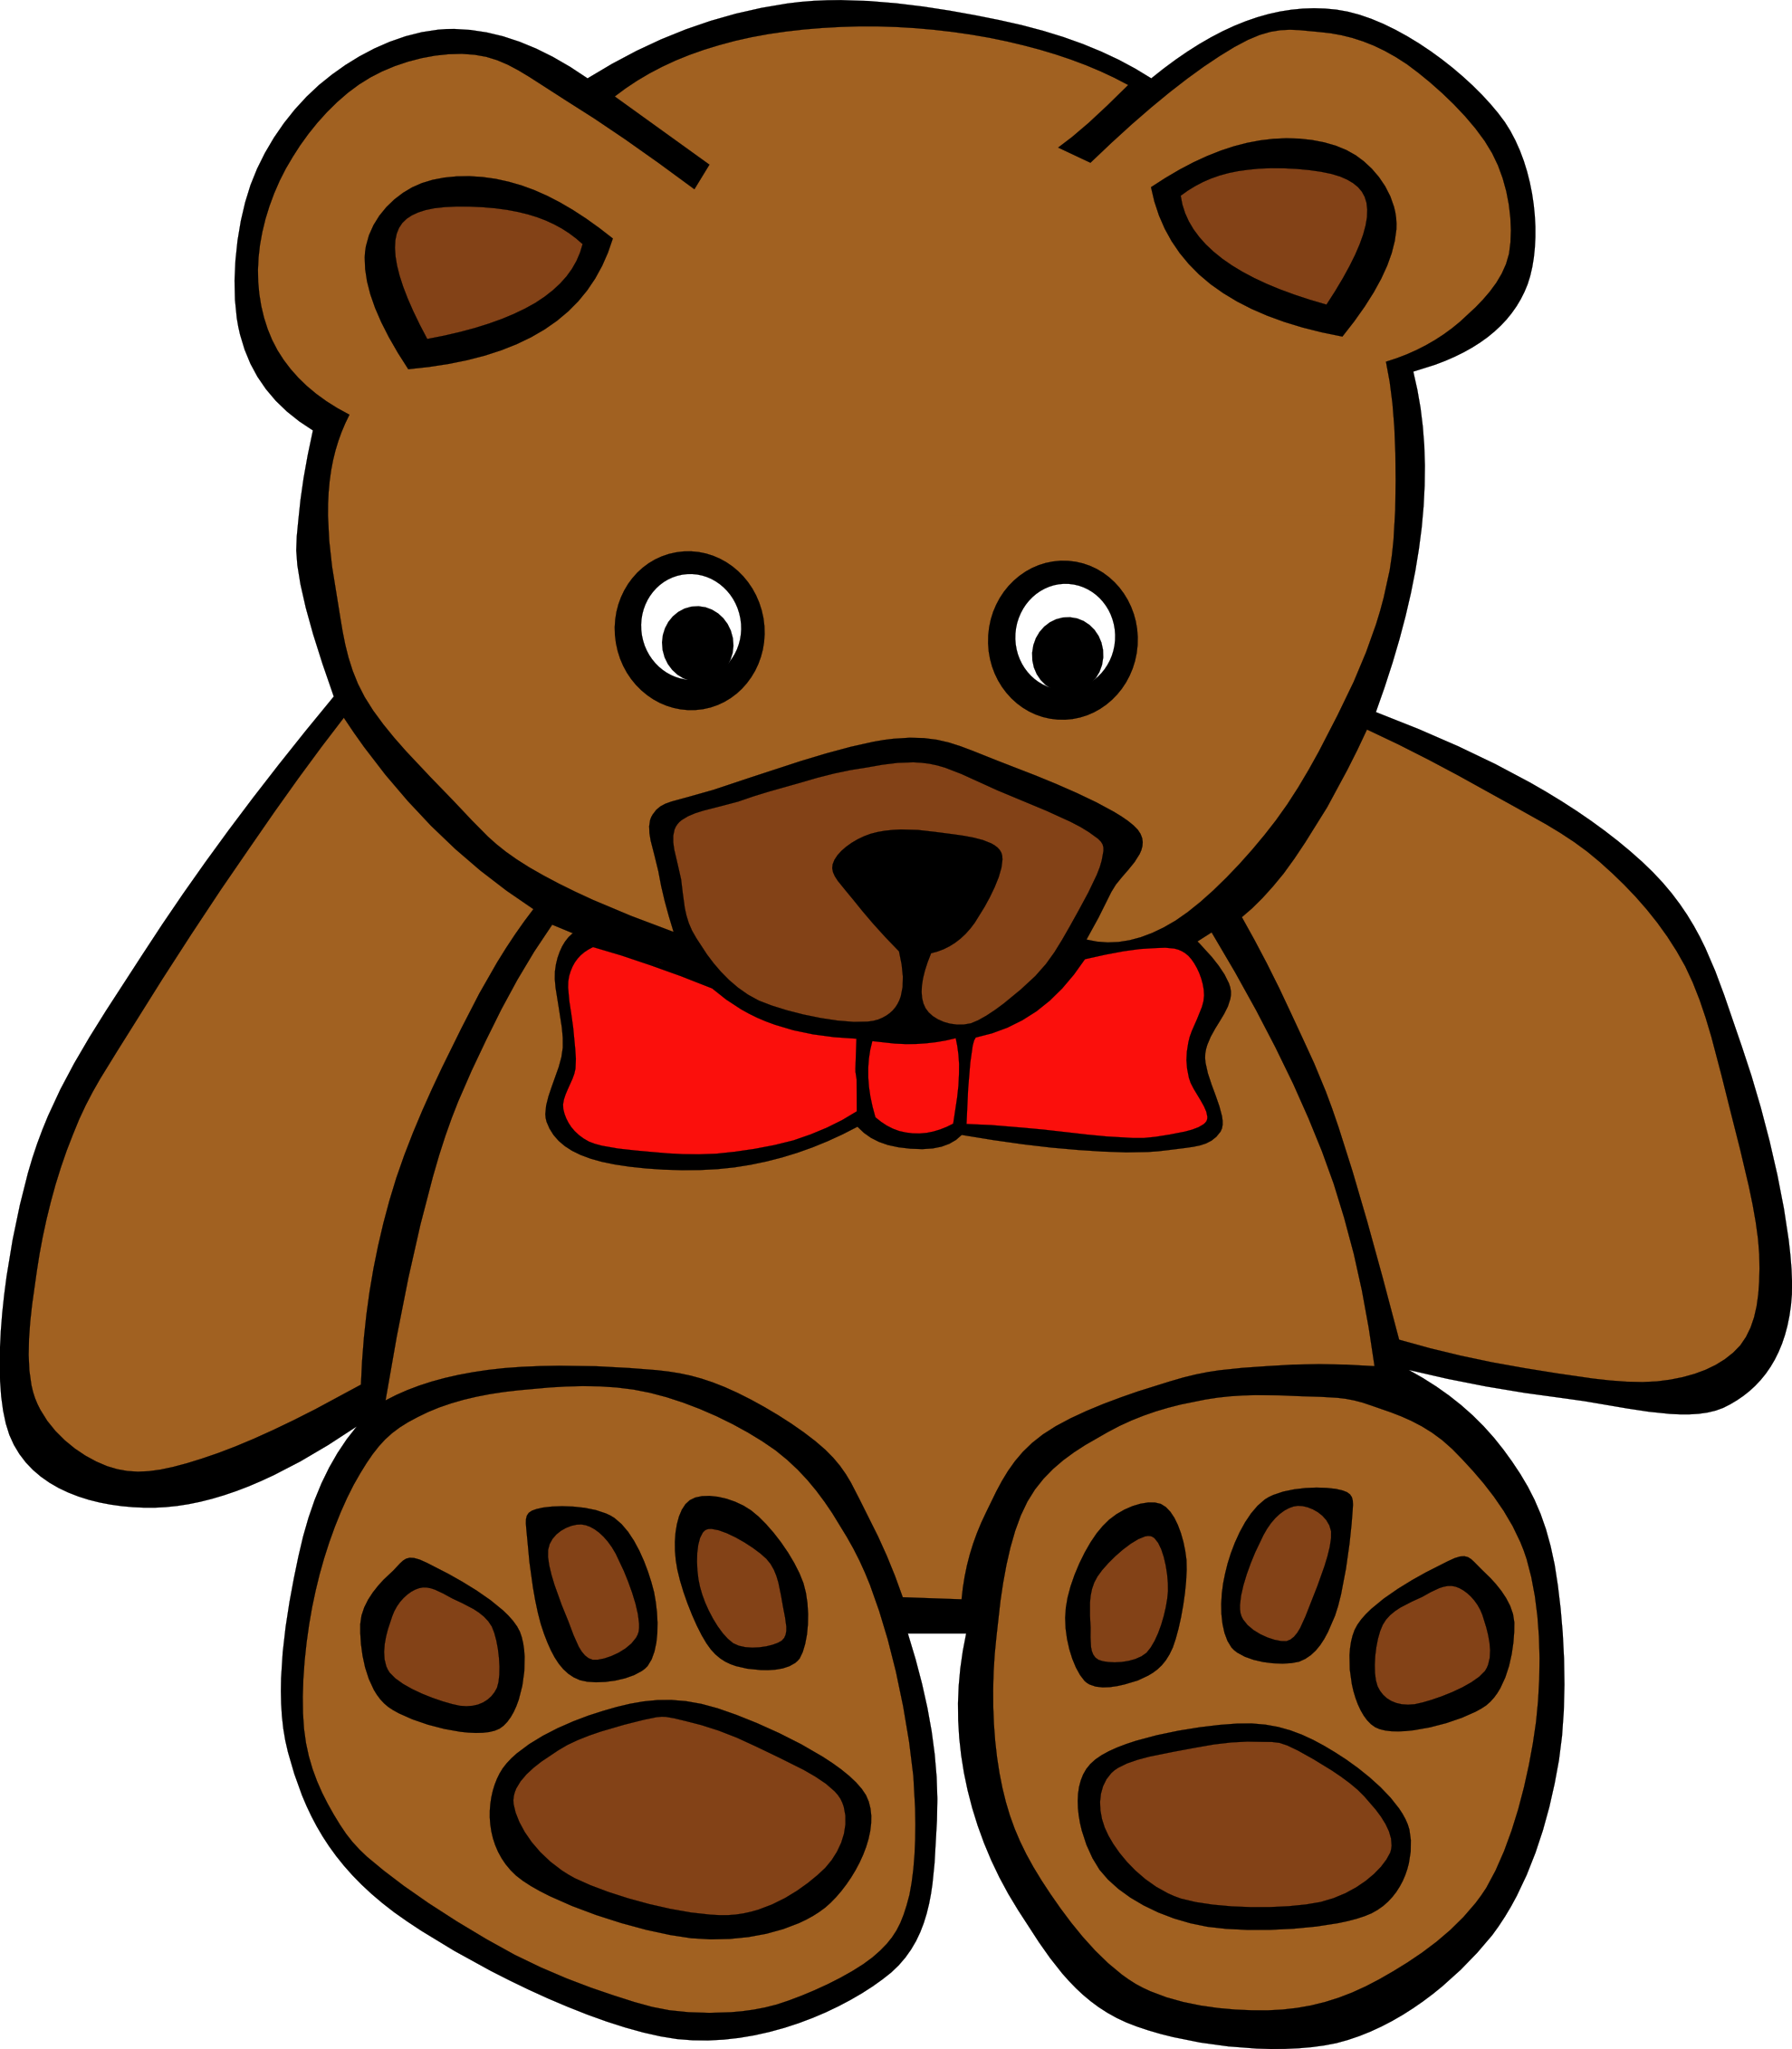 teddy bear clipart clipart panda free clipart images rh clipartpanda com clipart teddy bear black and white clipart teddy bear